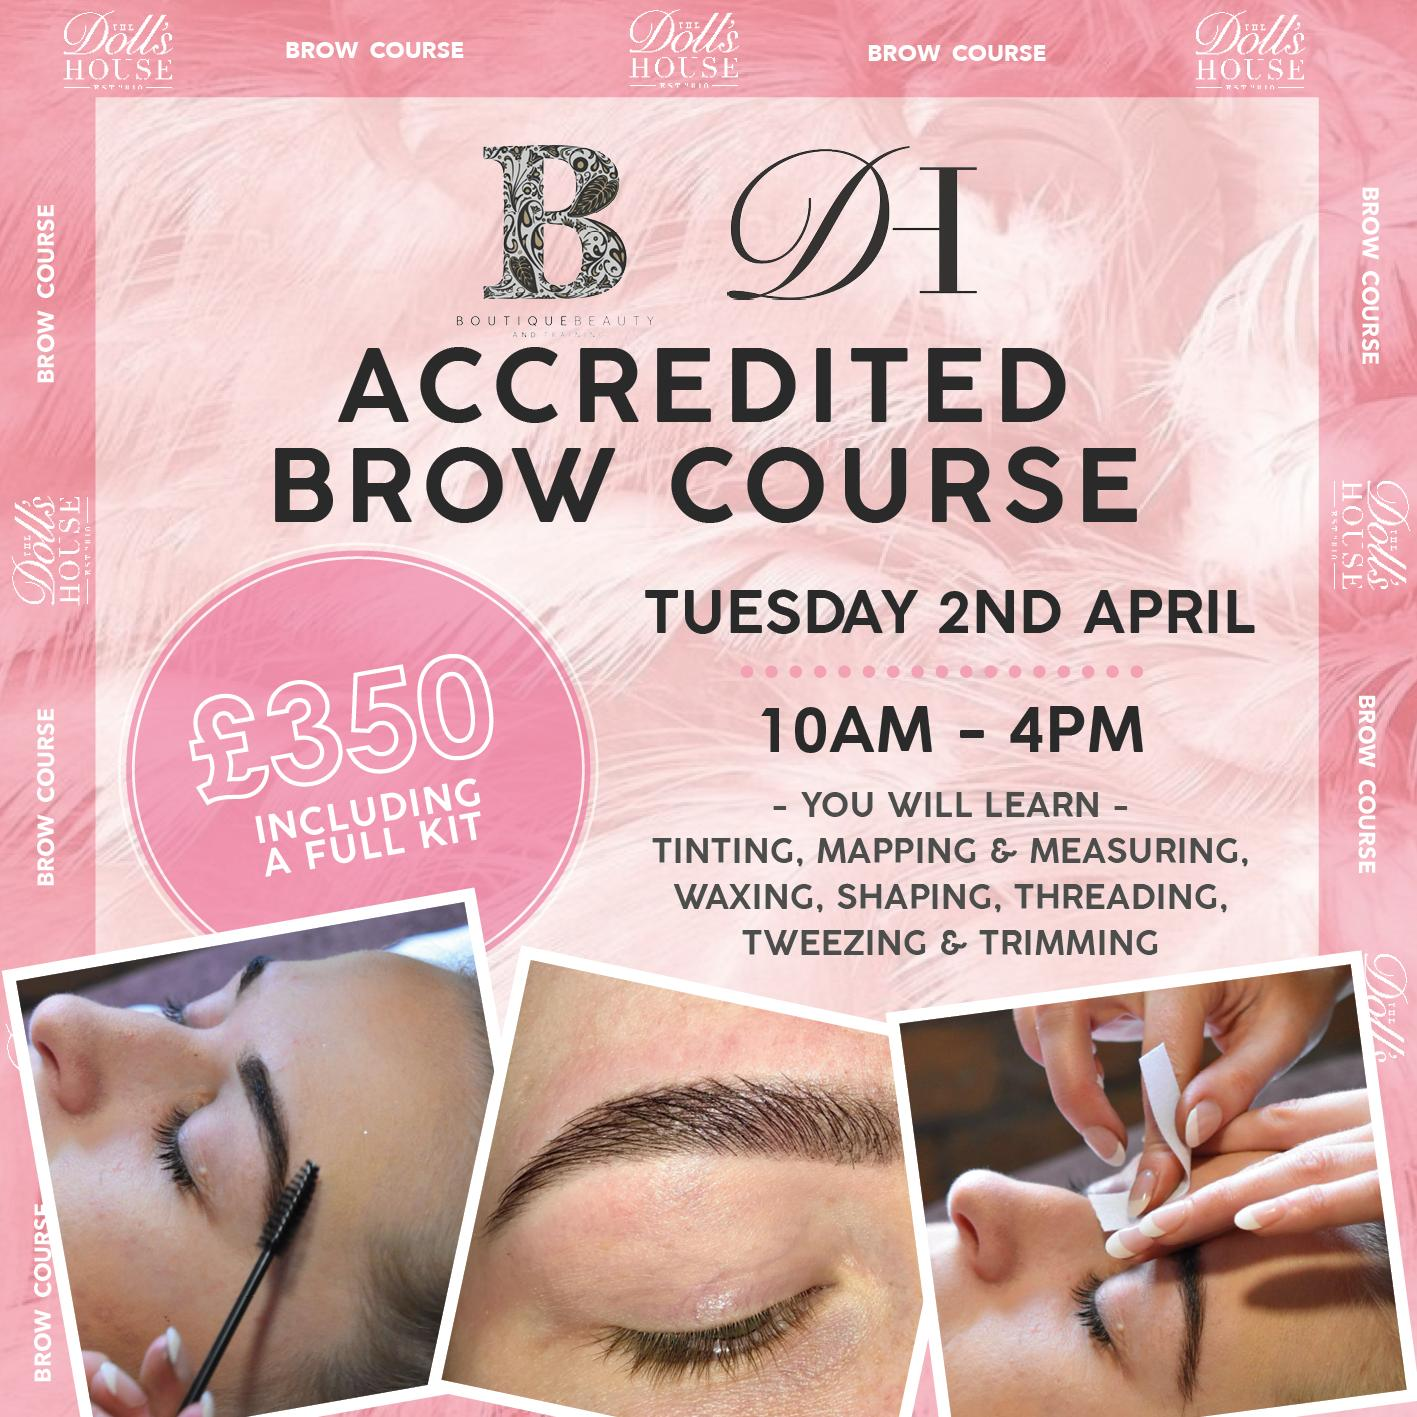 FULLY ACCREDITED BROW COURSE